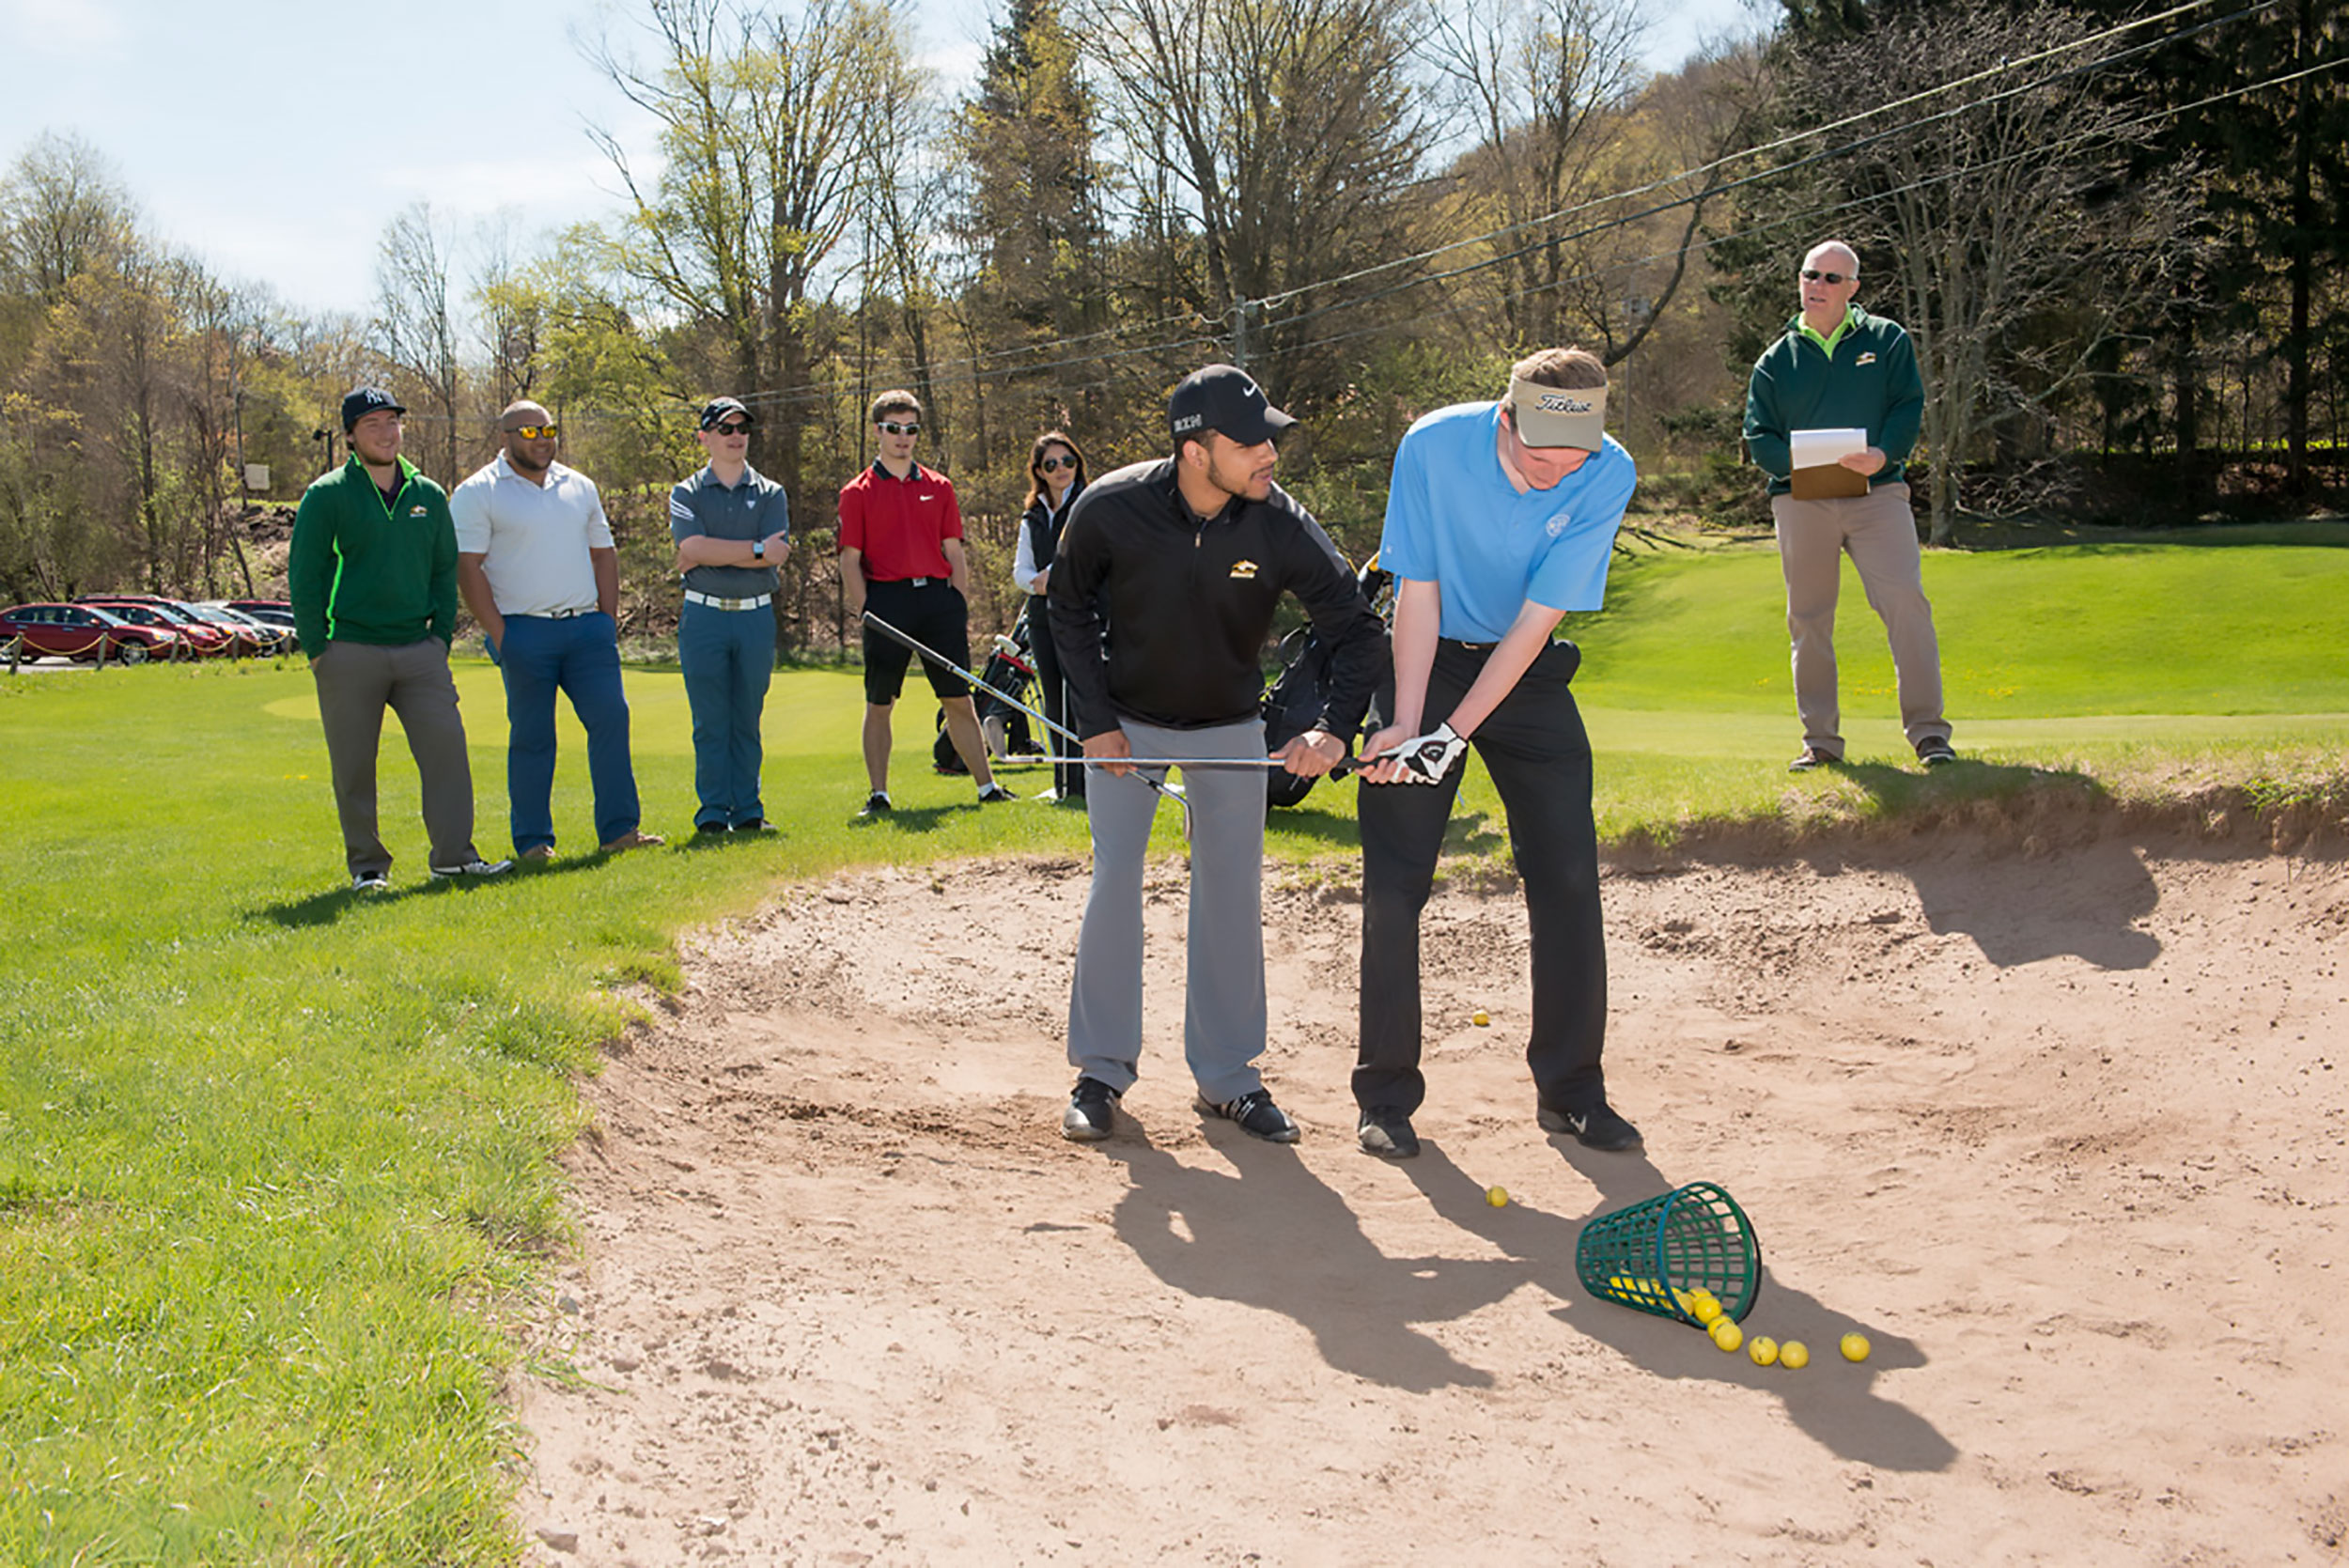 Golfing students and professors standing in sand pit